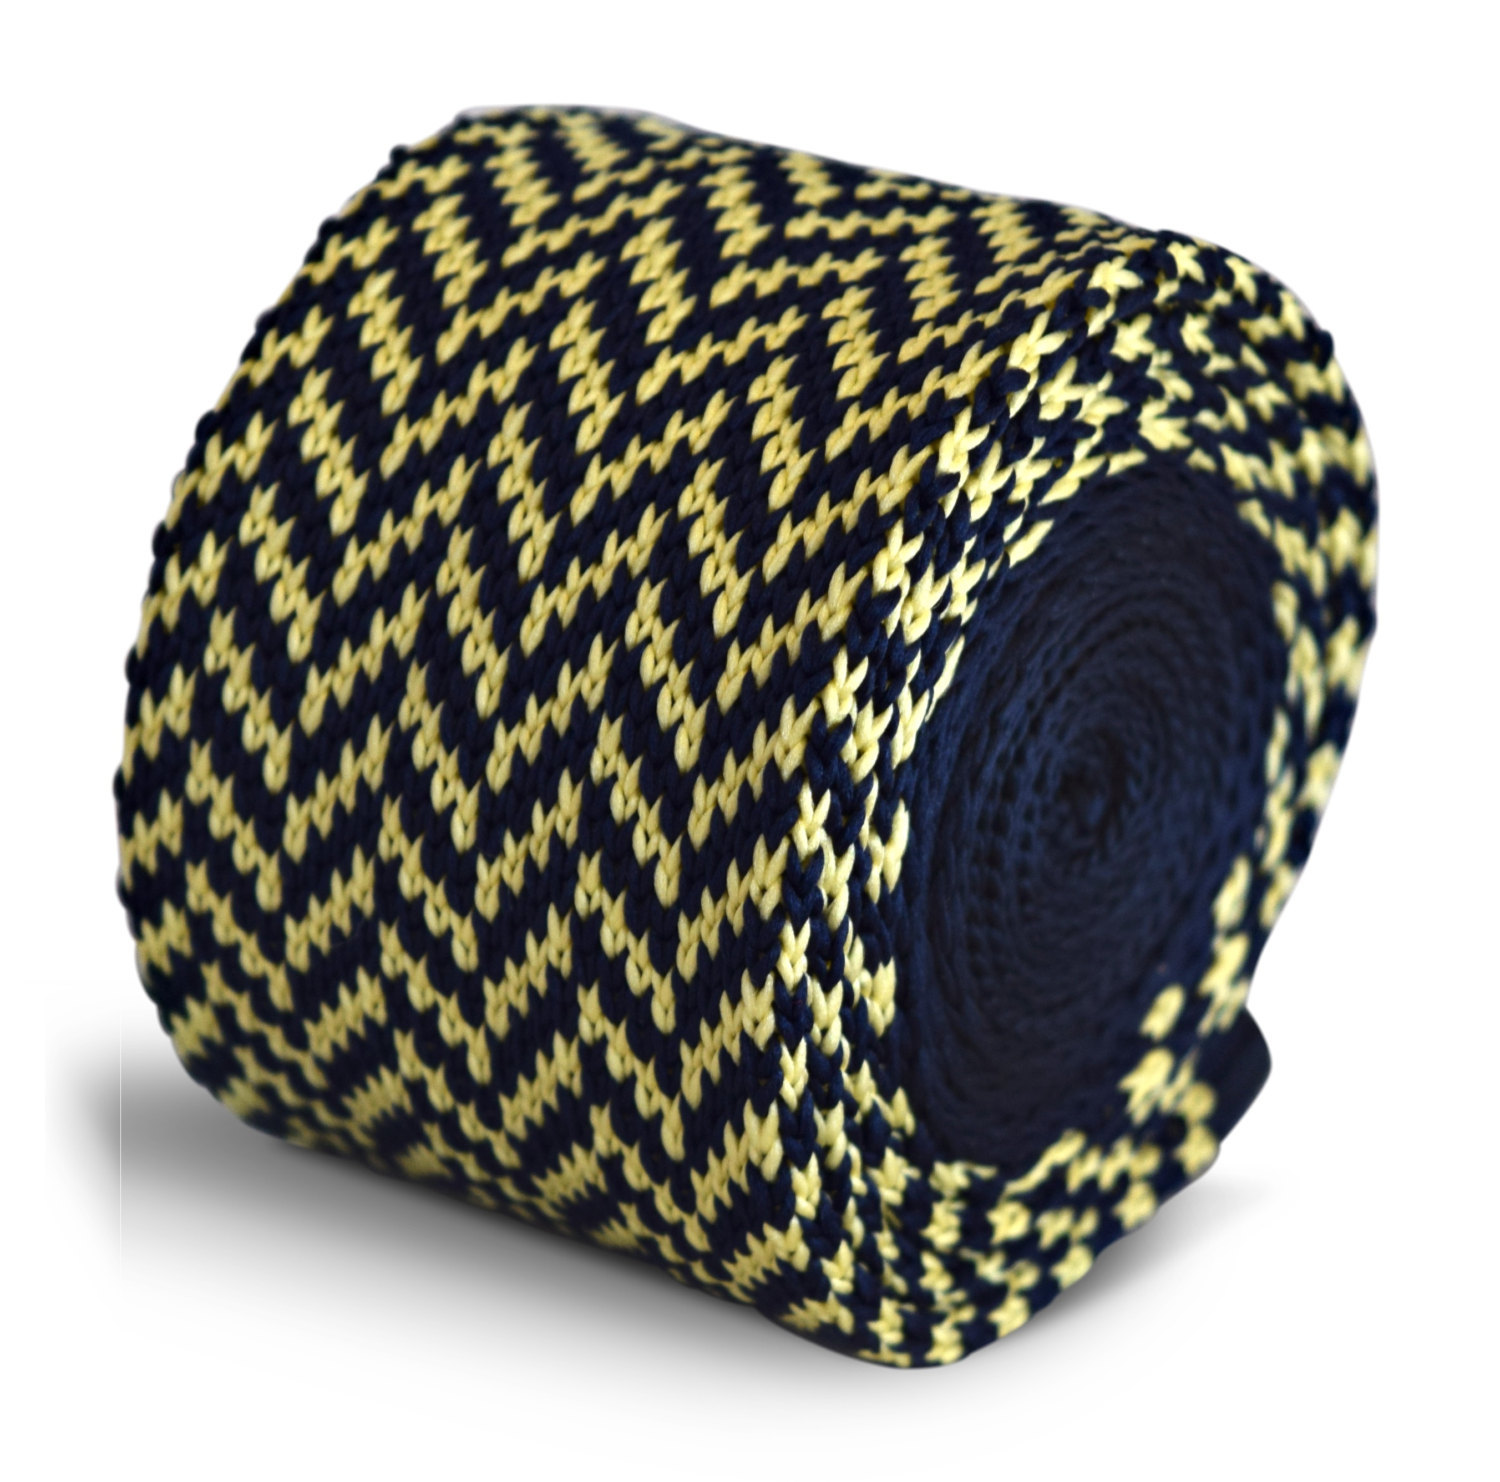 navy blue and yellow herringbone knitted skinny tie by Frederick Thomas FT3305